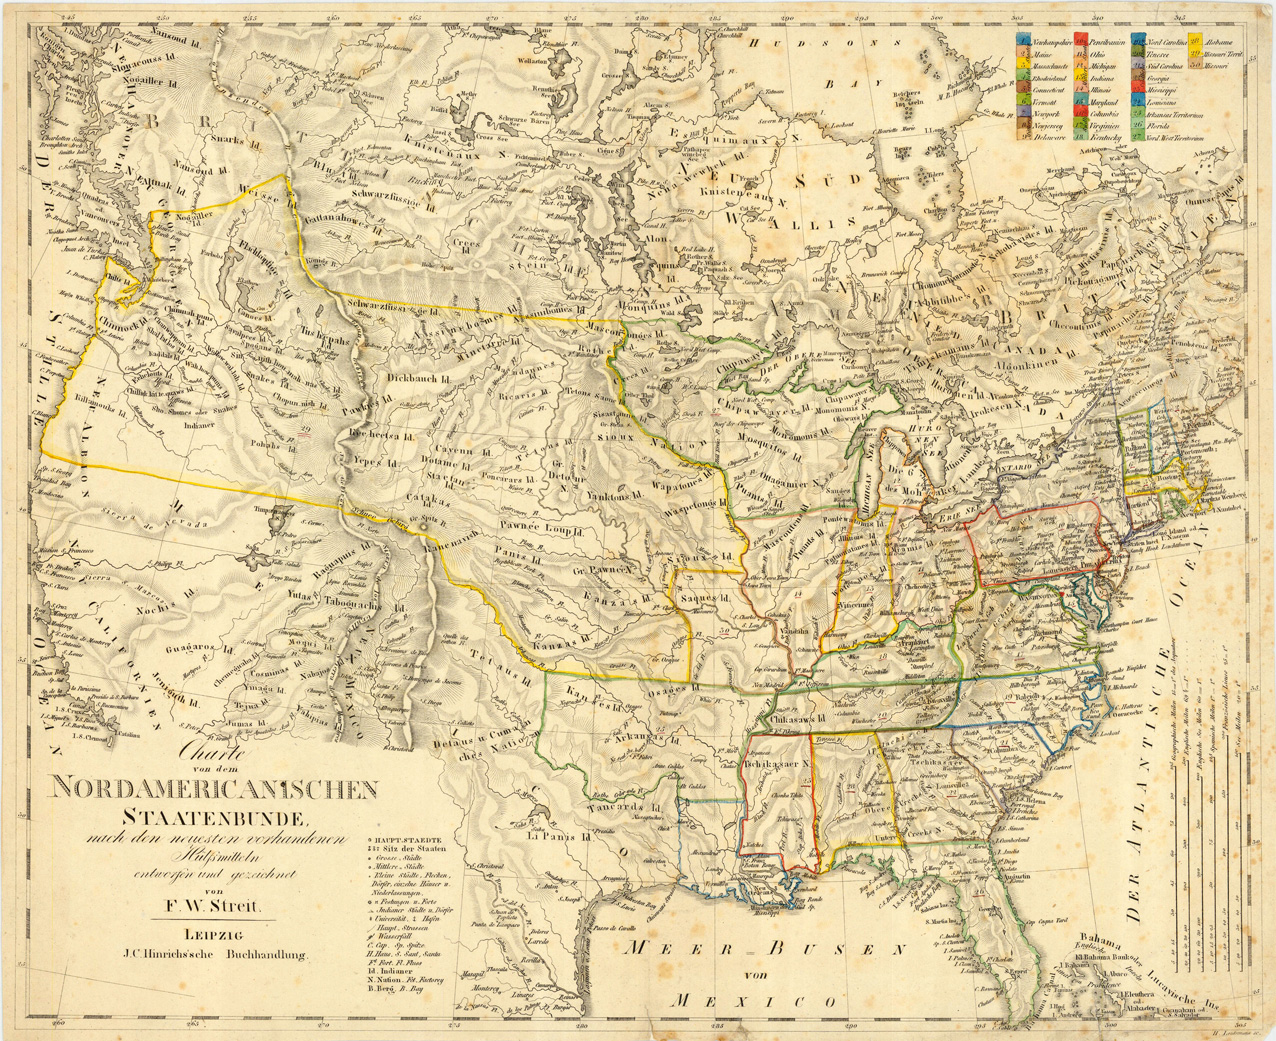 Map Of North America Showing States.Washington County Maps And Charts